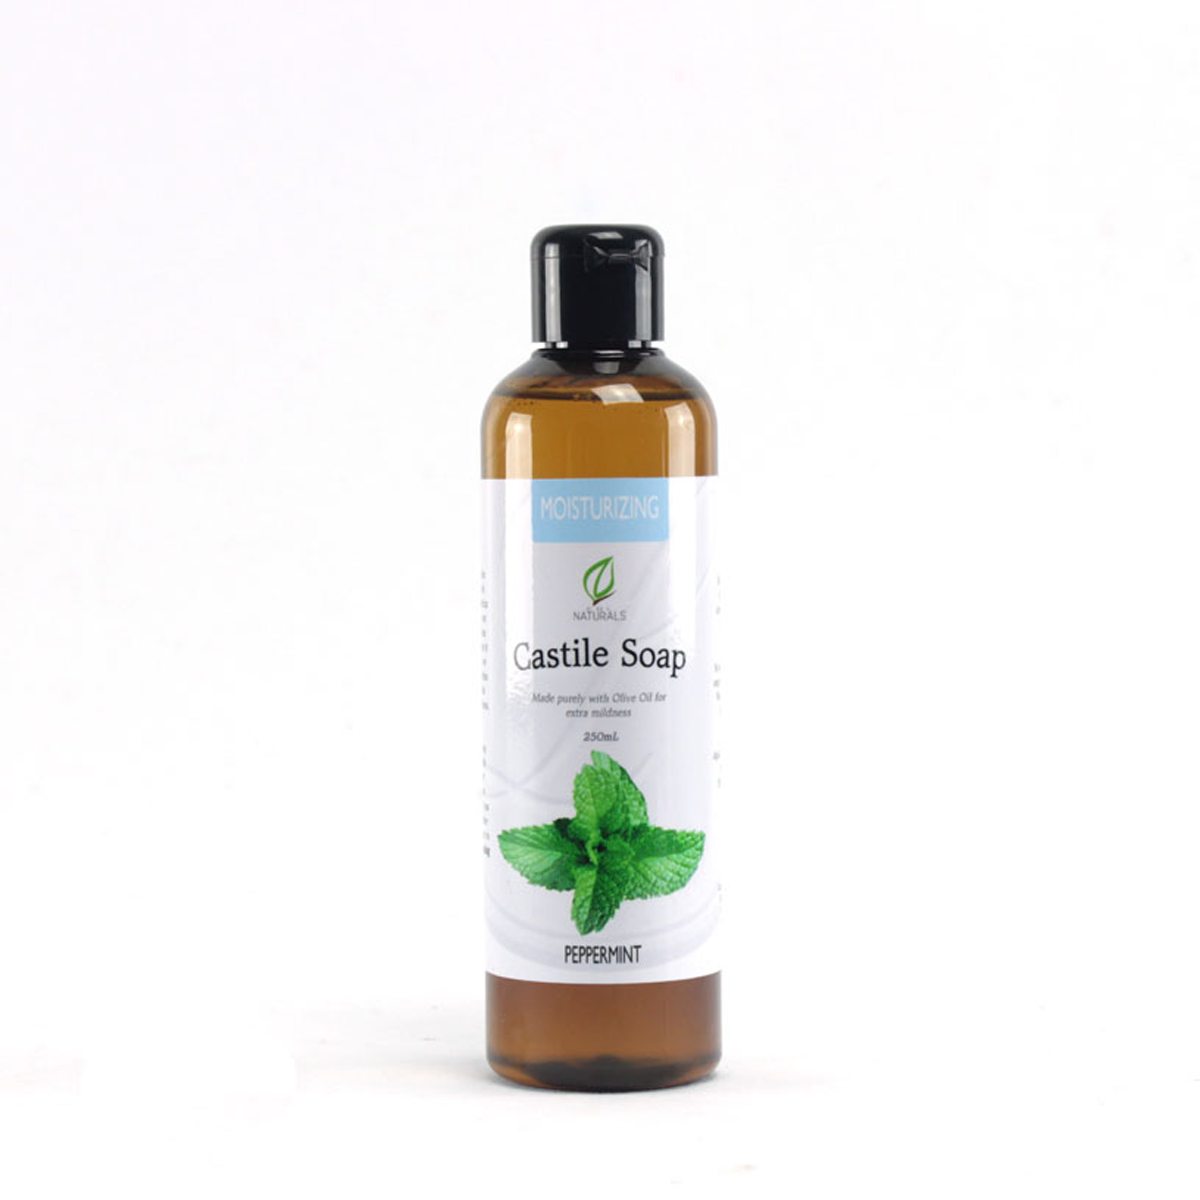 Peppermint Moisturizing Castile Soap